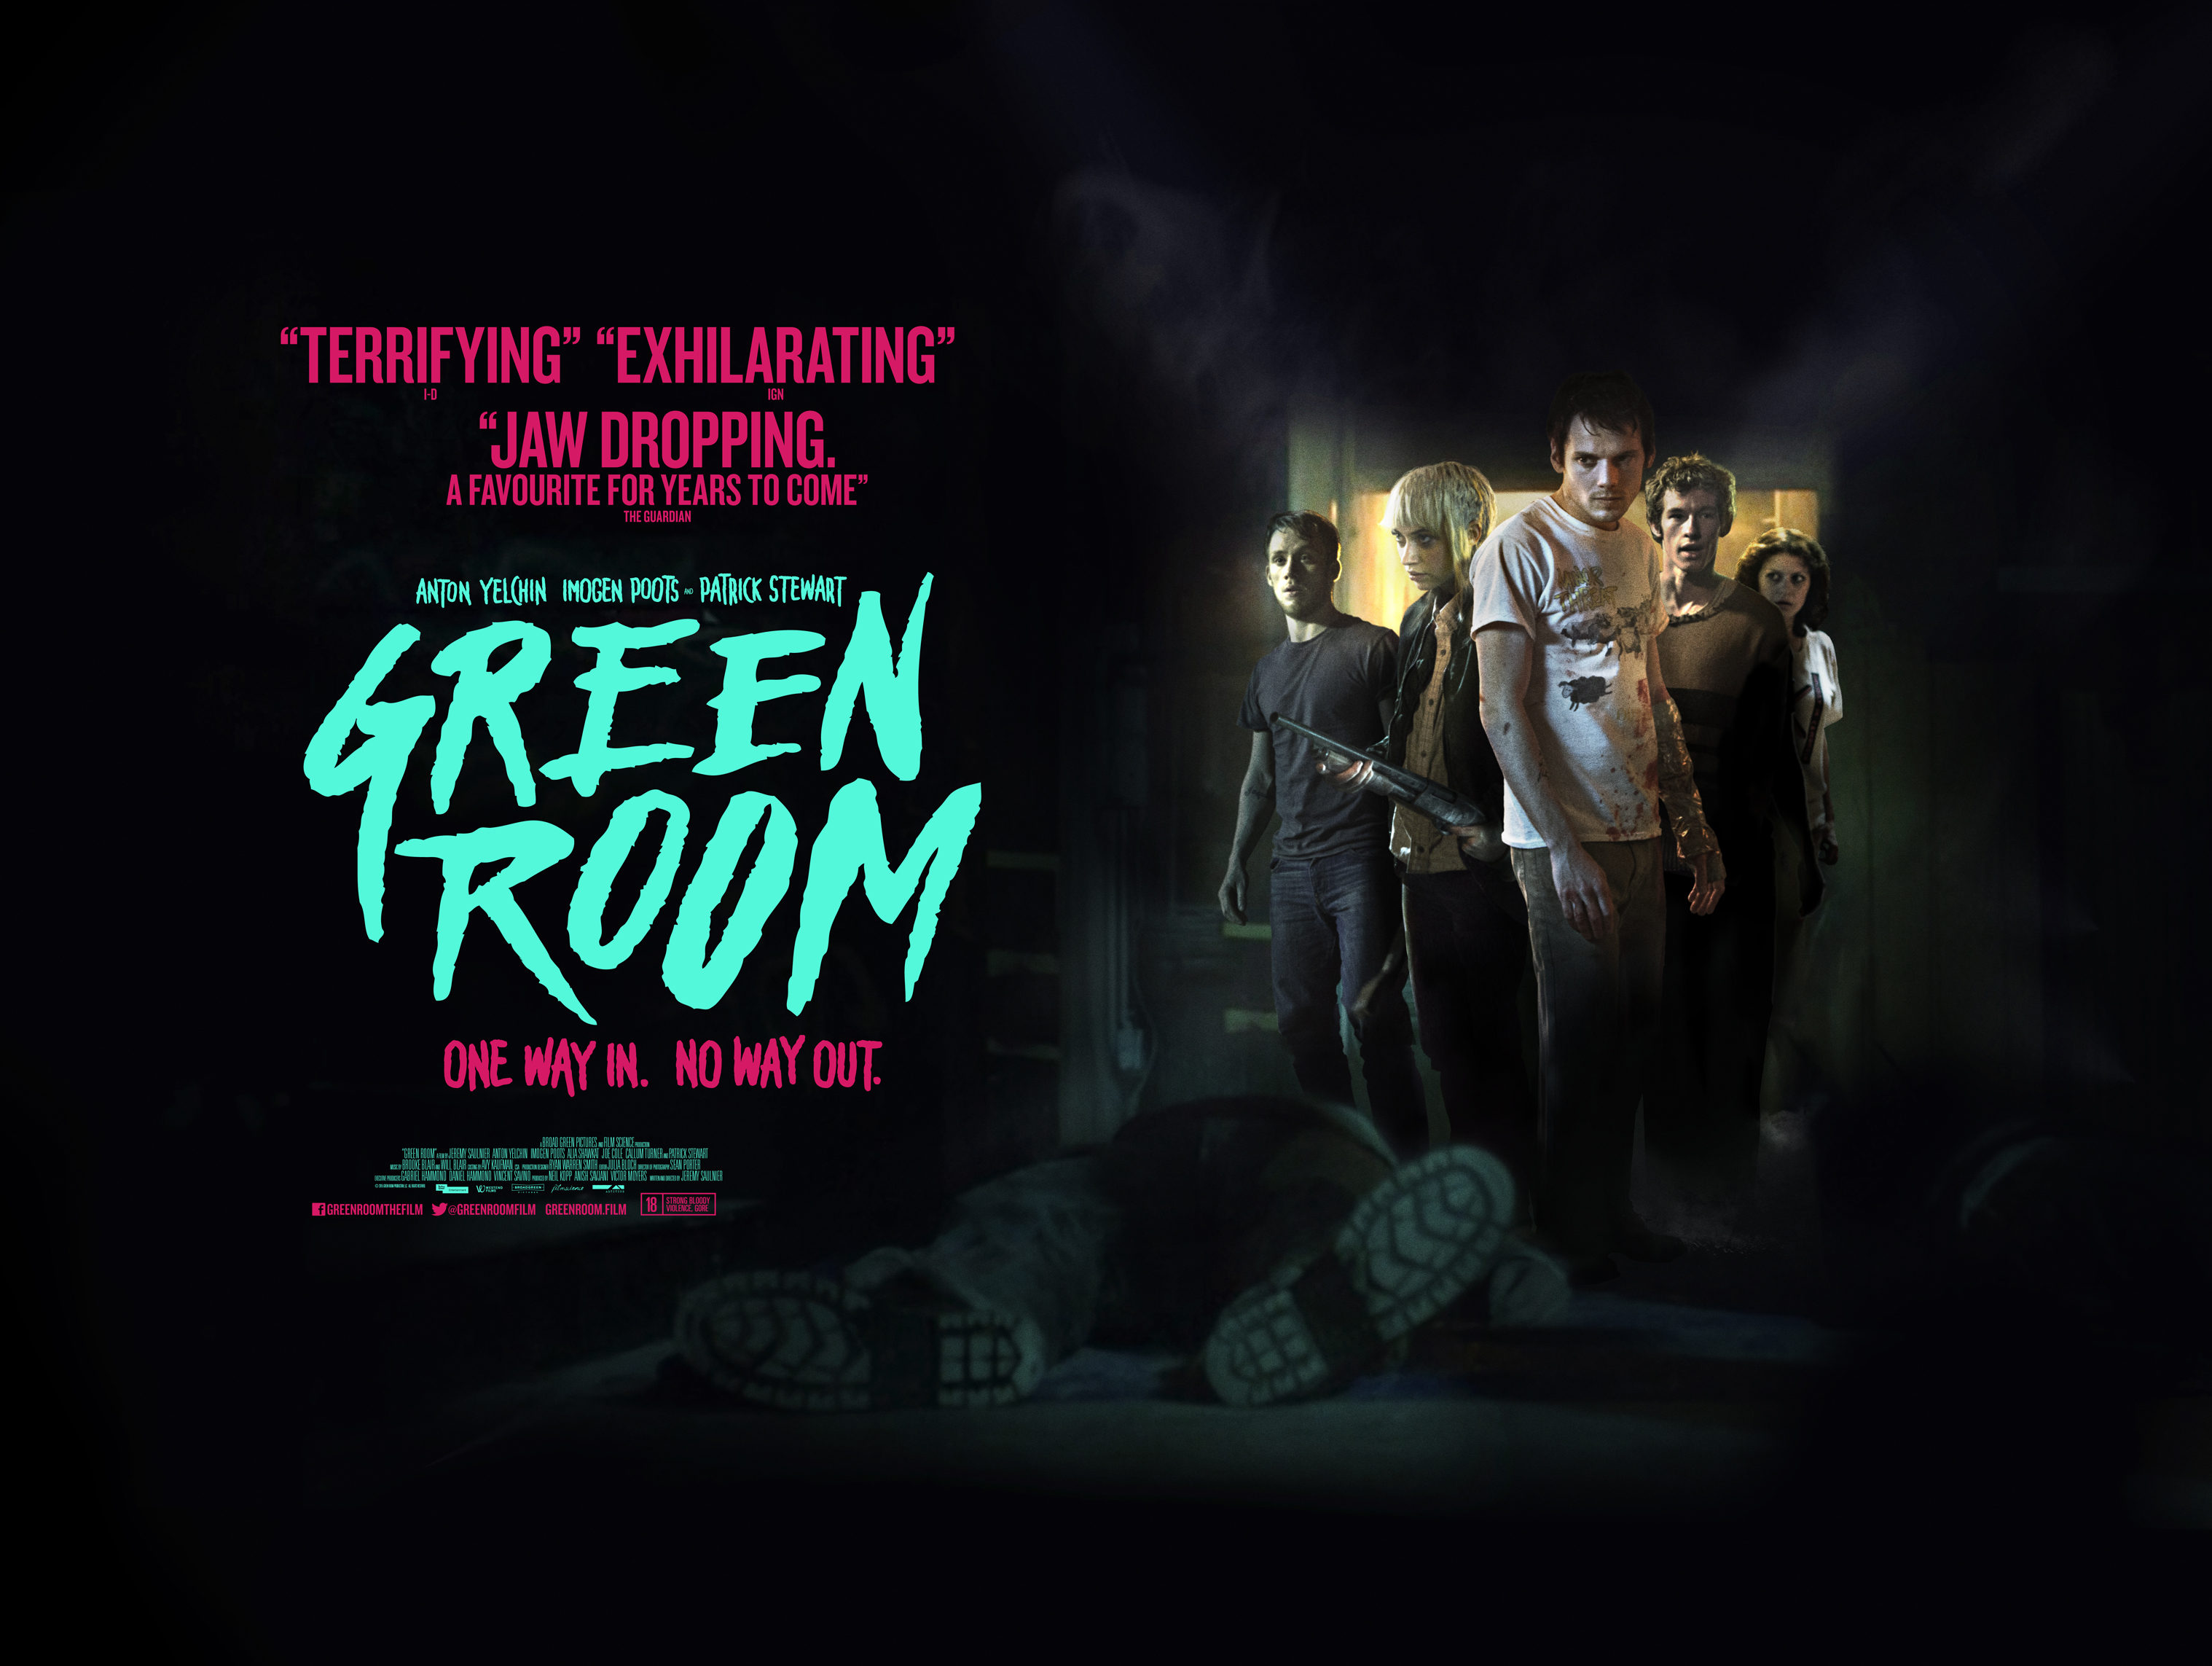 Green Room' Quad Poster Offers No Way Out - Bloody Disgusting